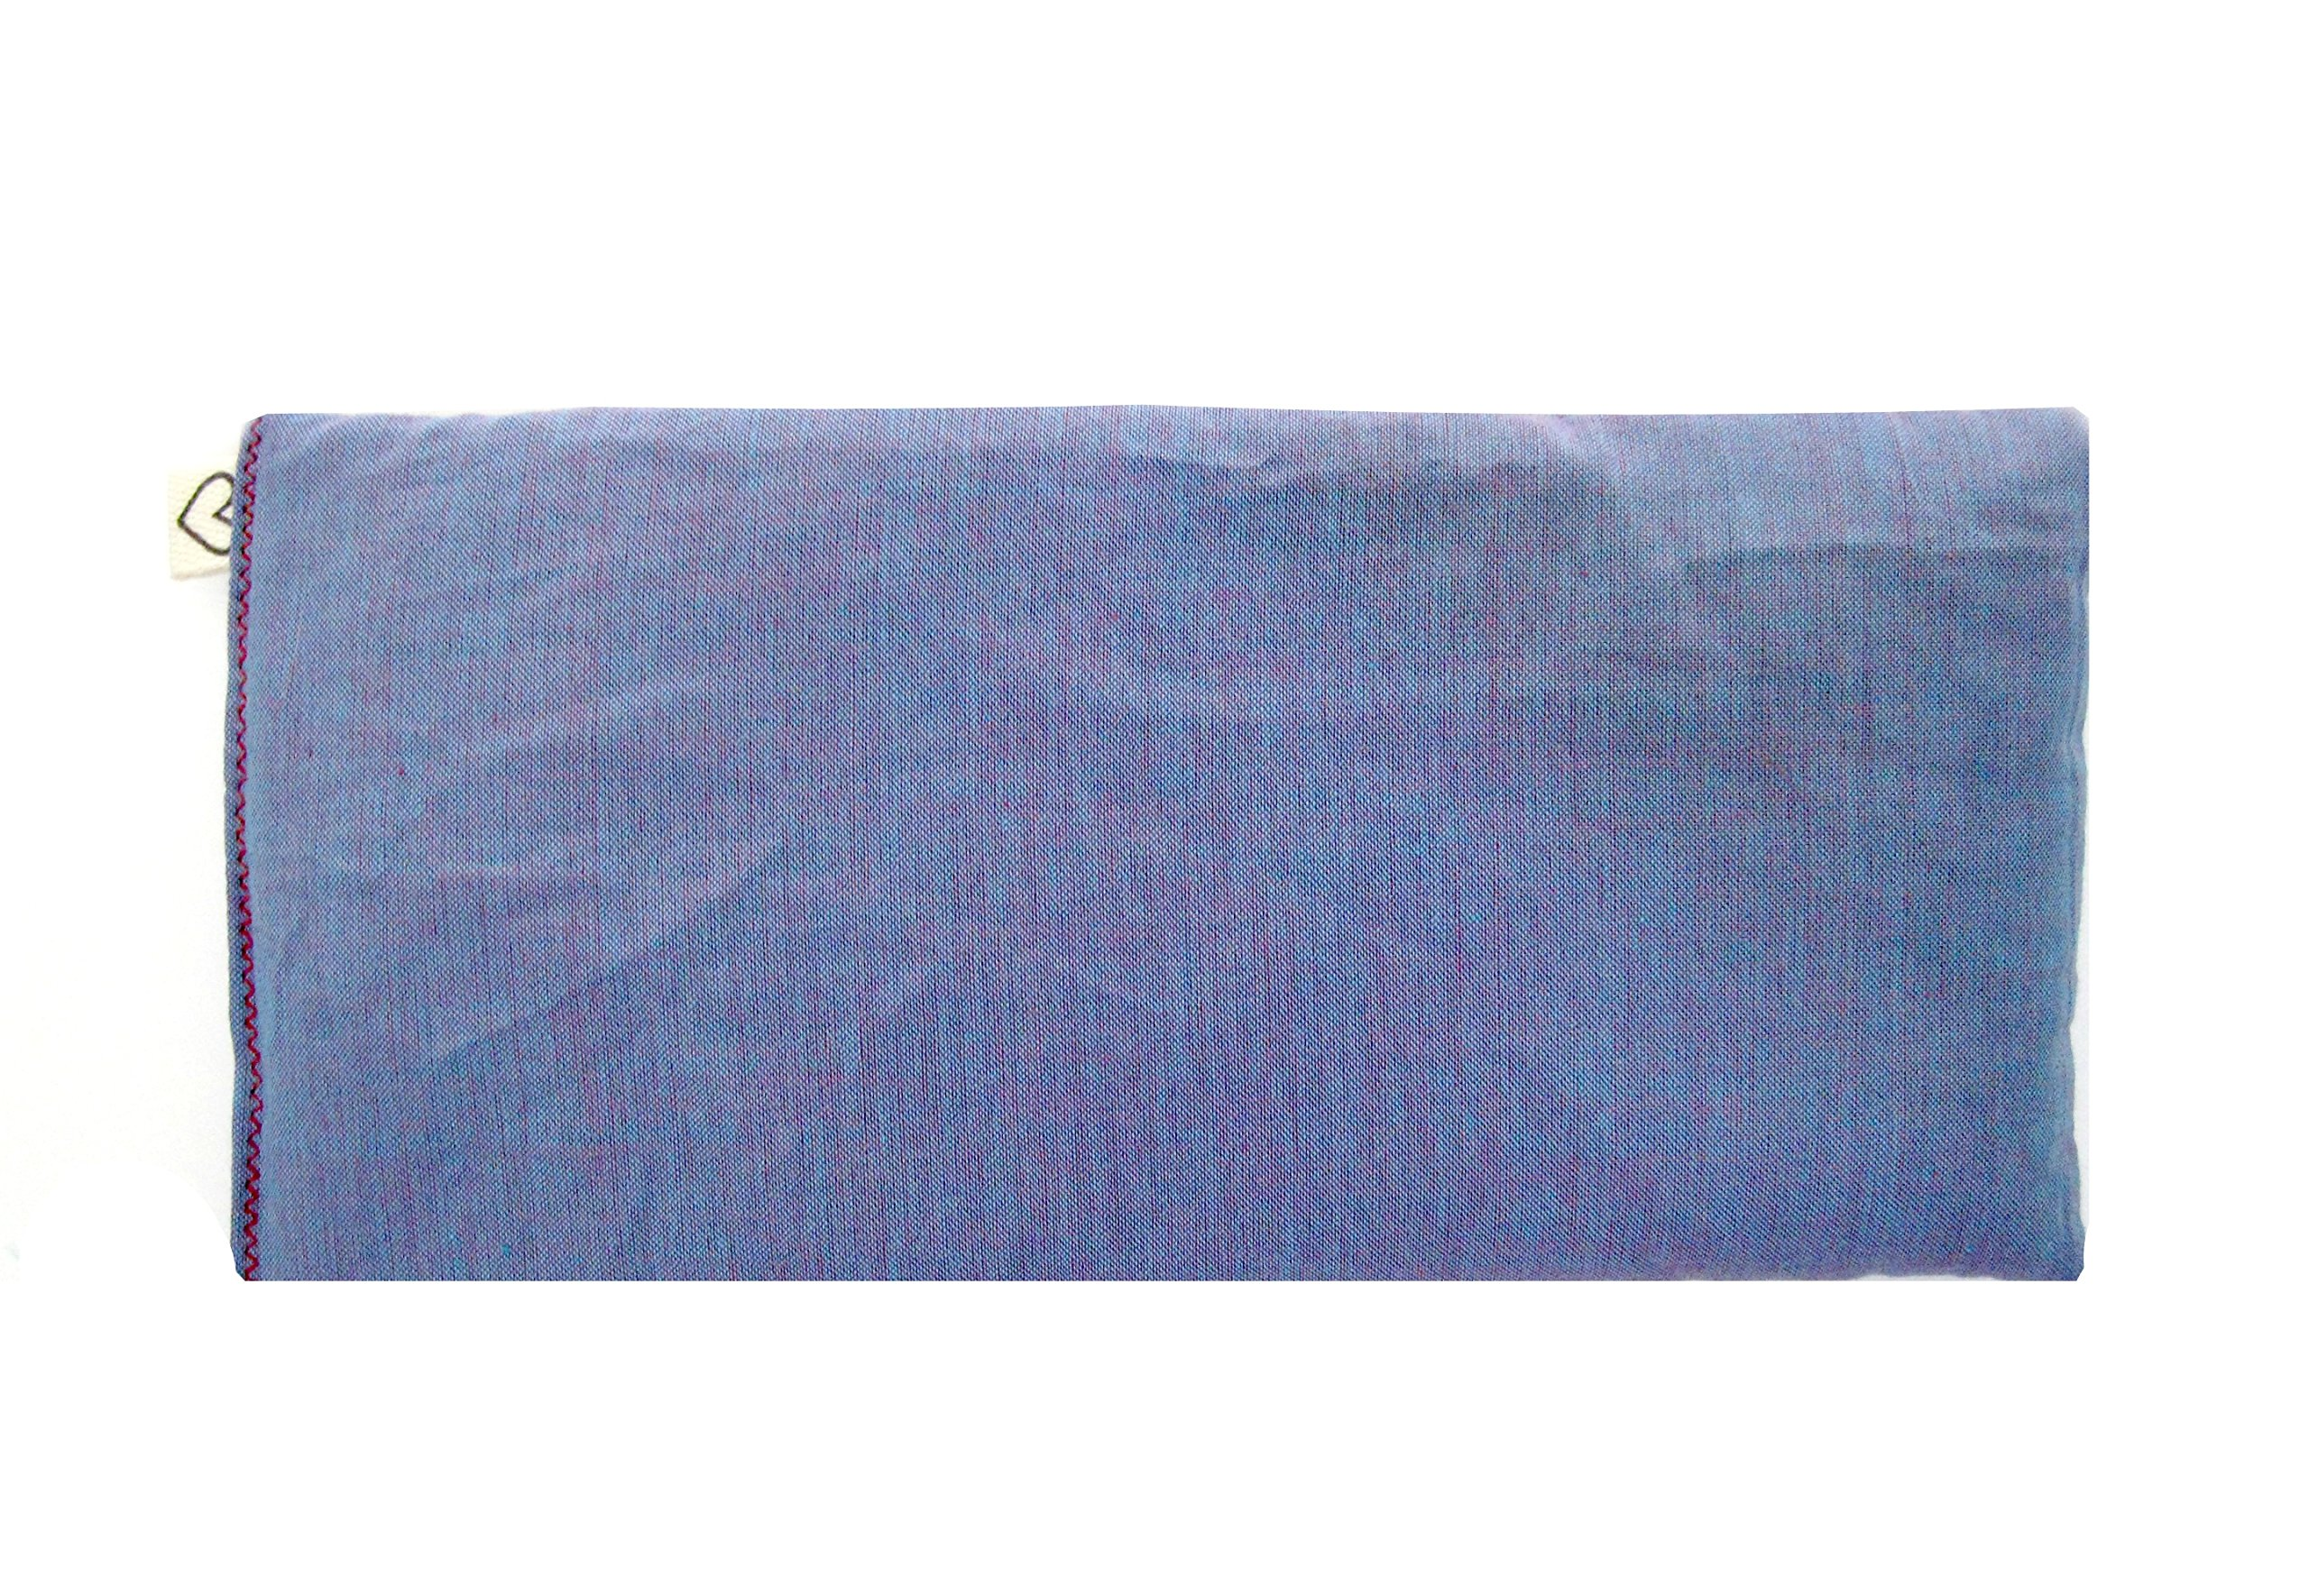 Pack of (4) Unscented Organic Flax Seed Eye Pillows - 4 x 8.5 - Soft & Soothing Cotton - soothing relaxing - purple lilac amethyst